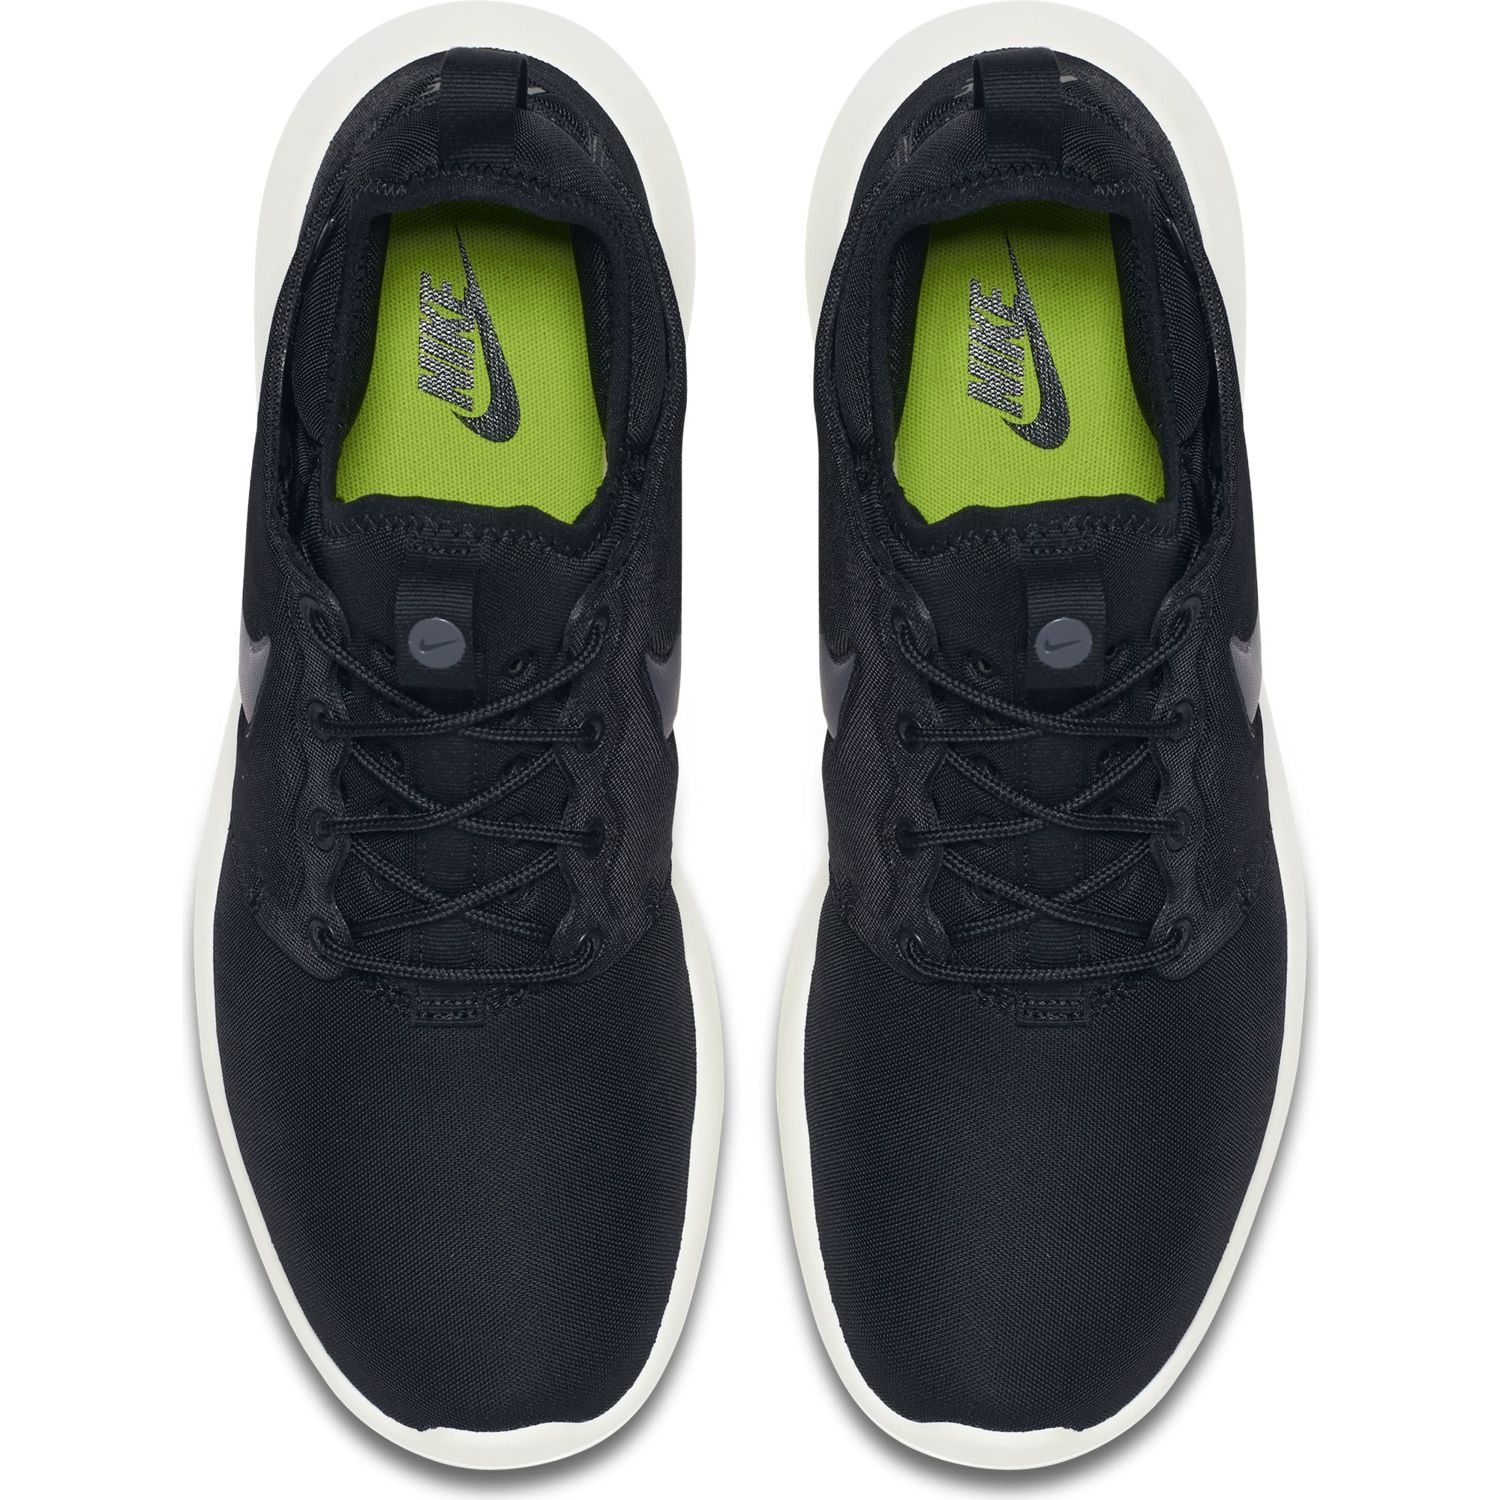 Nike Roshe Two Black 844656 003